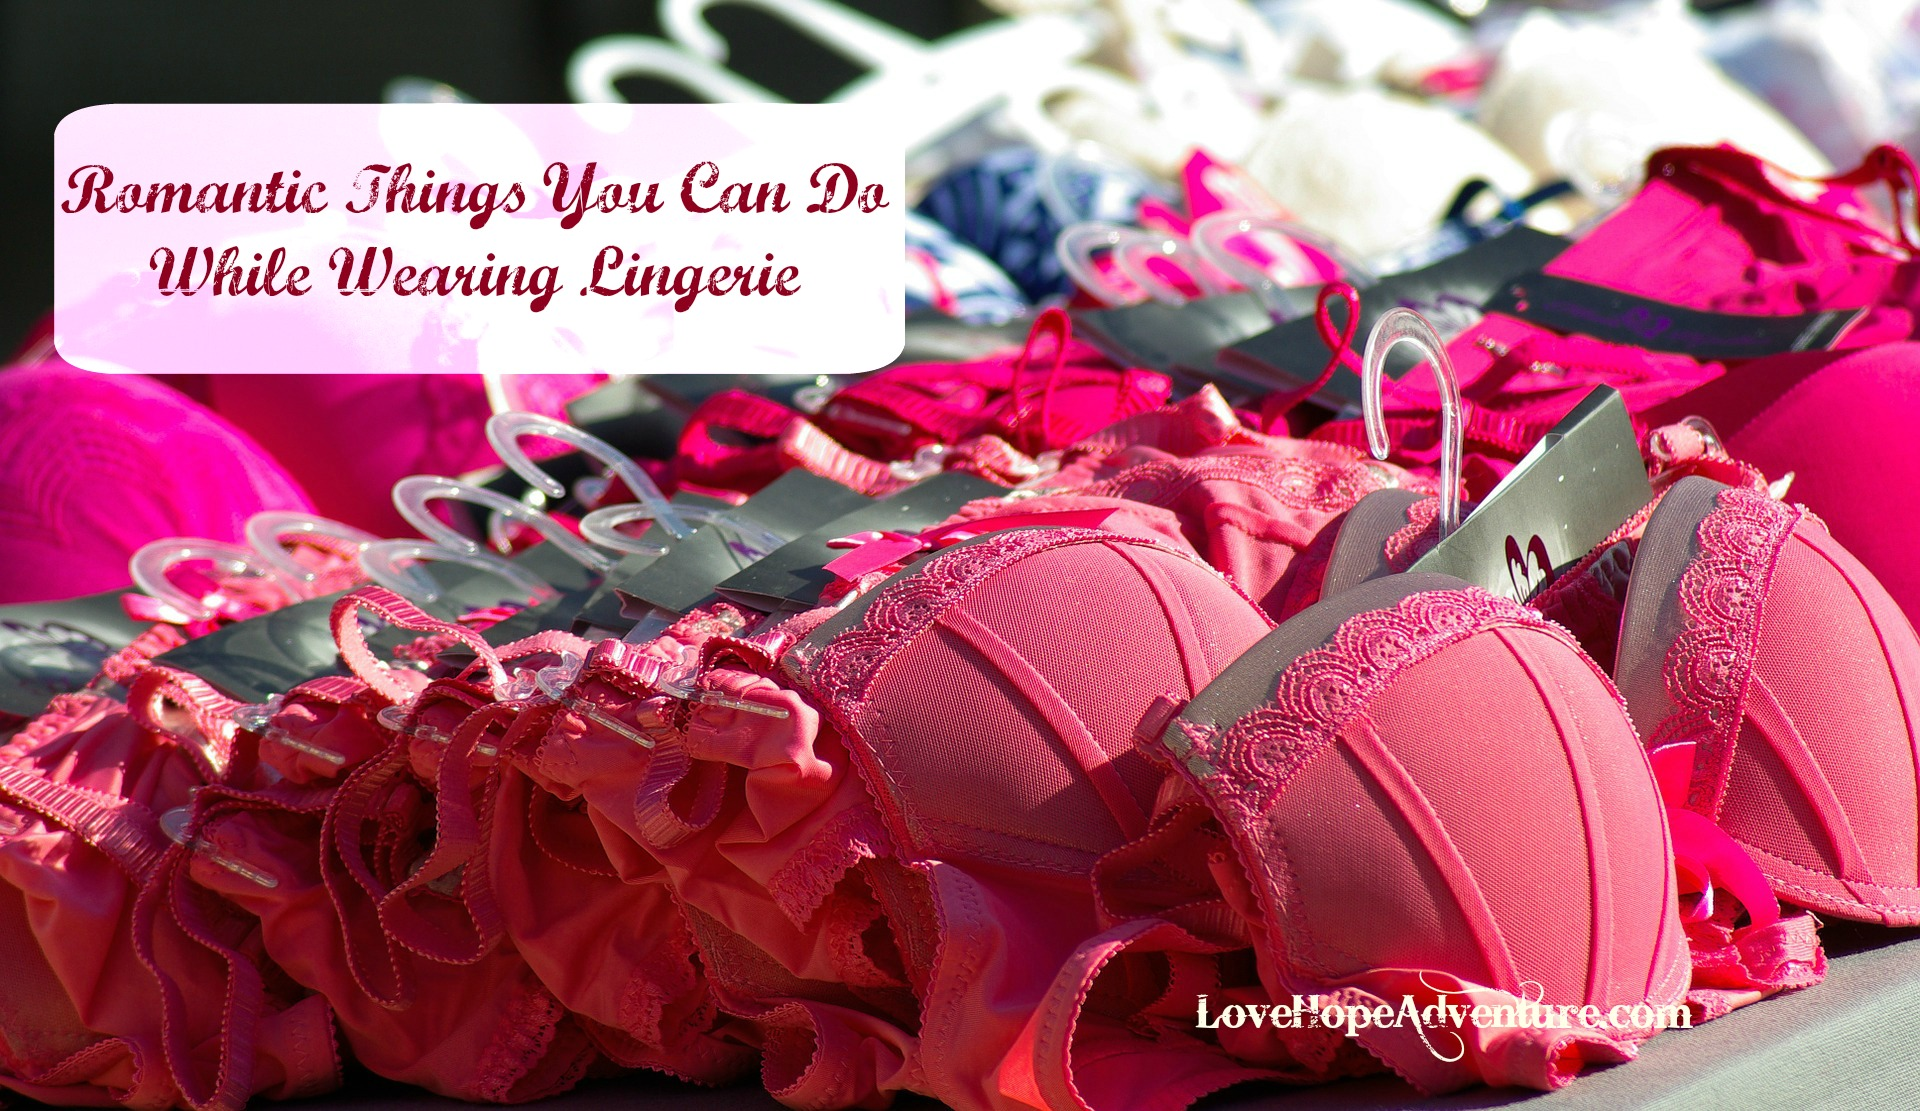 Romantic Thngs You Can Do While Wearing Lingerie